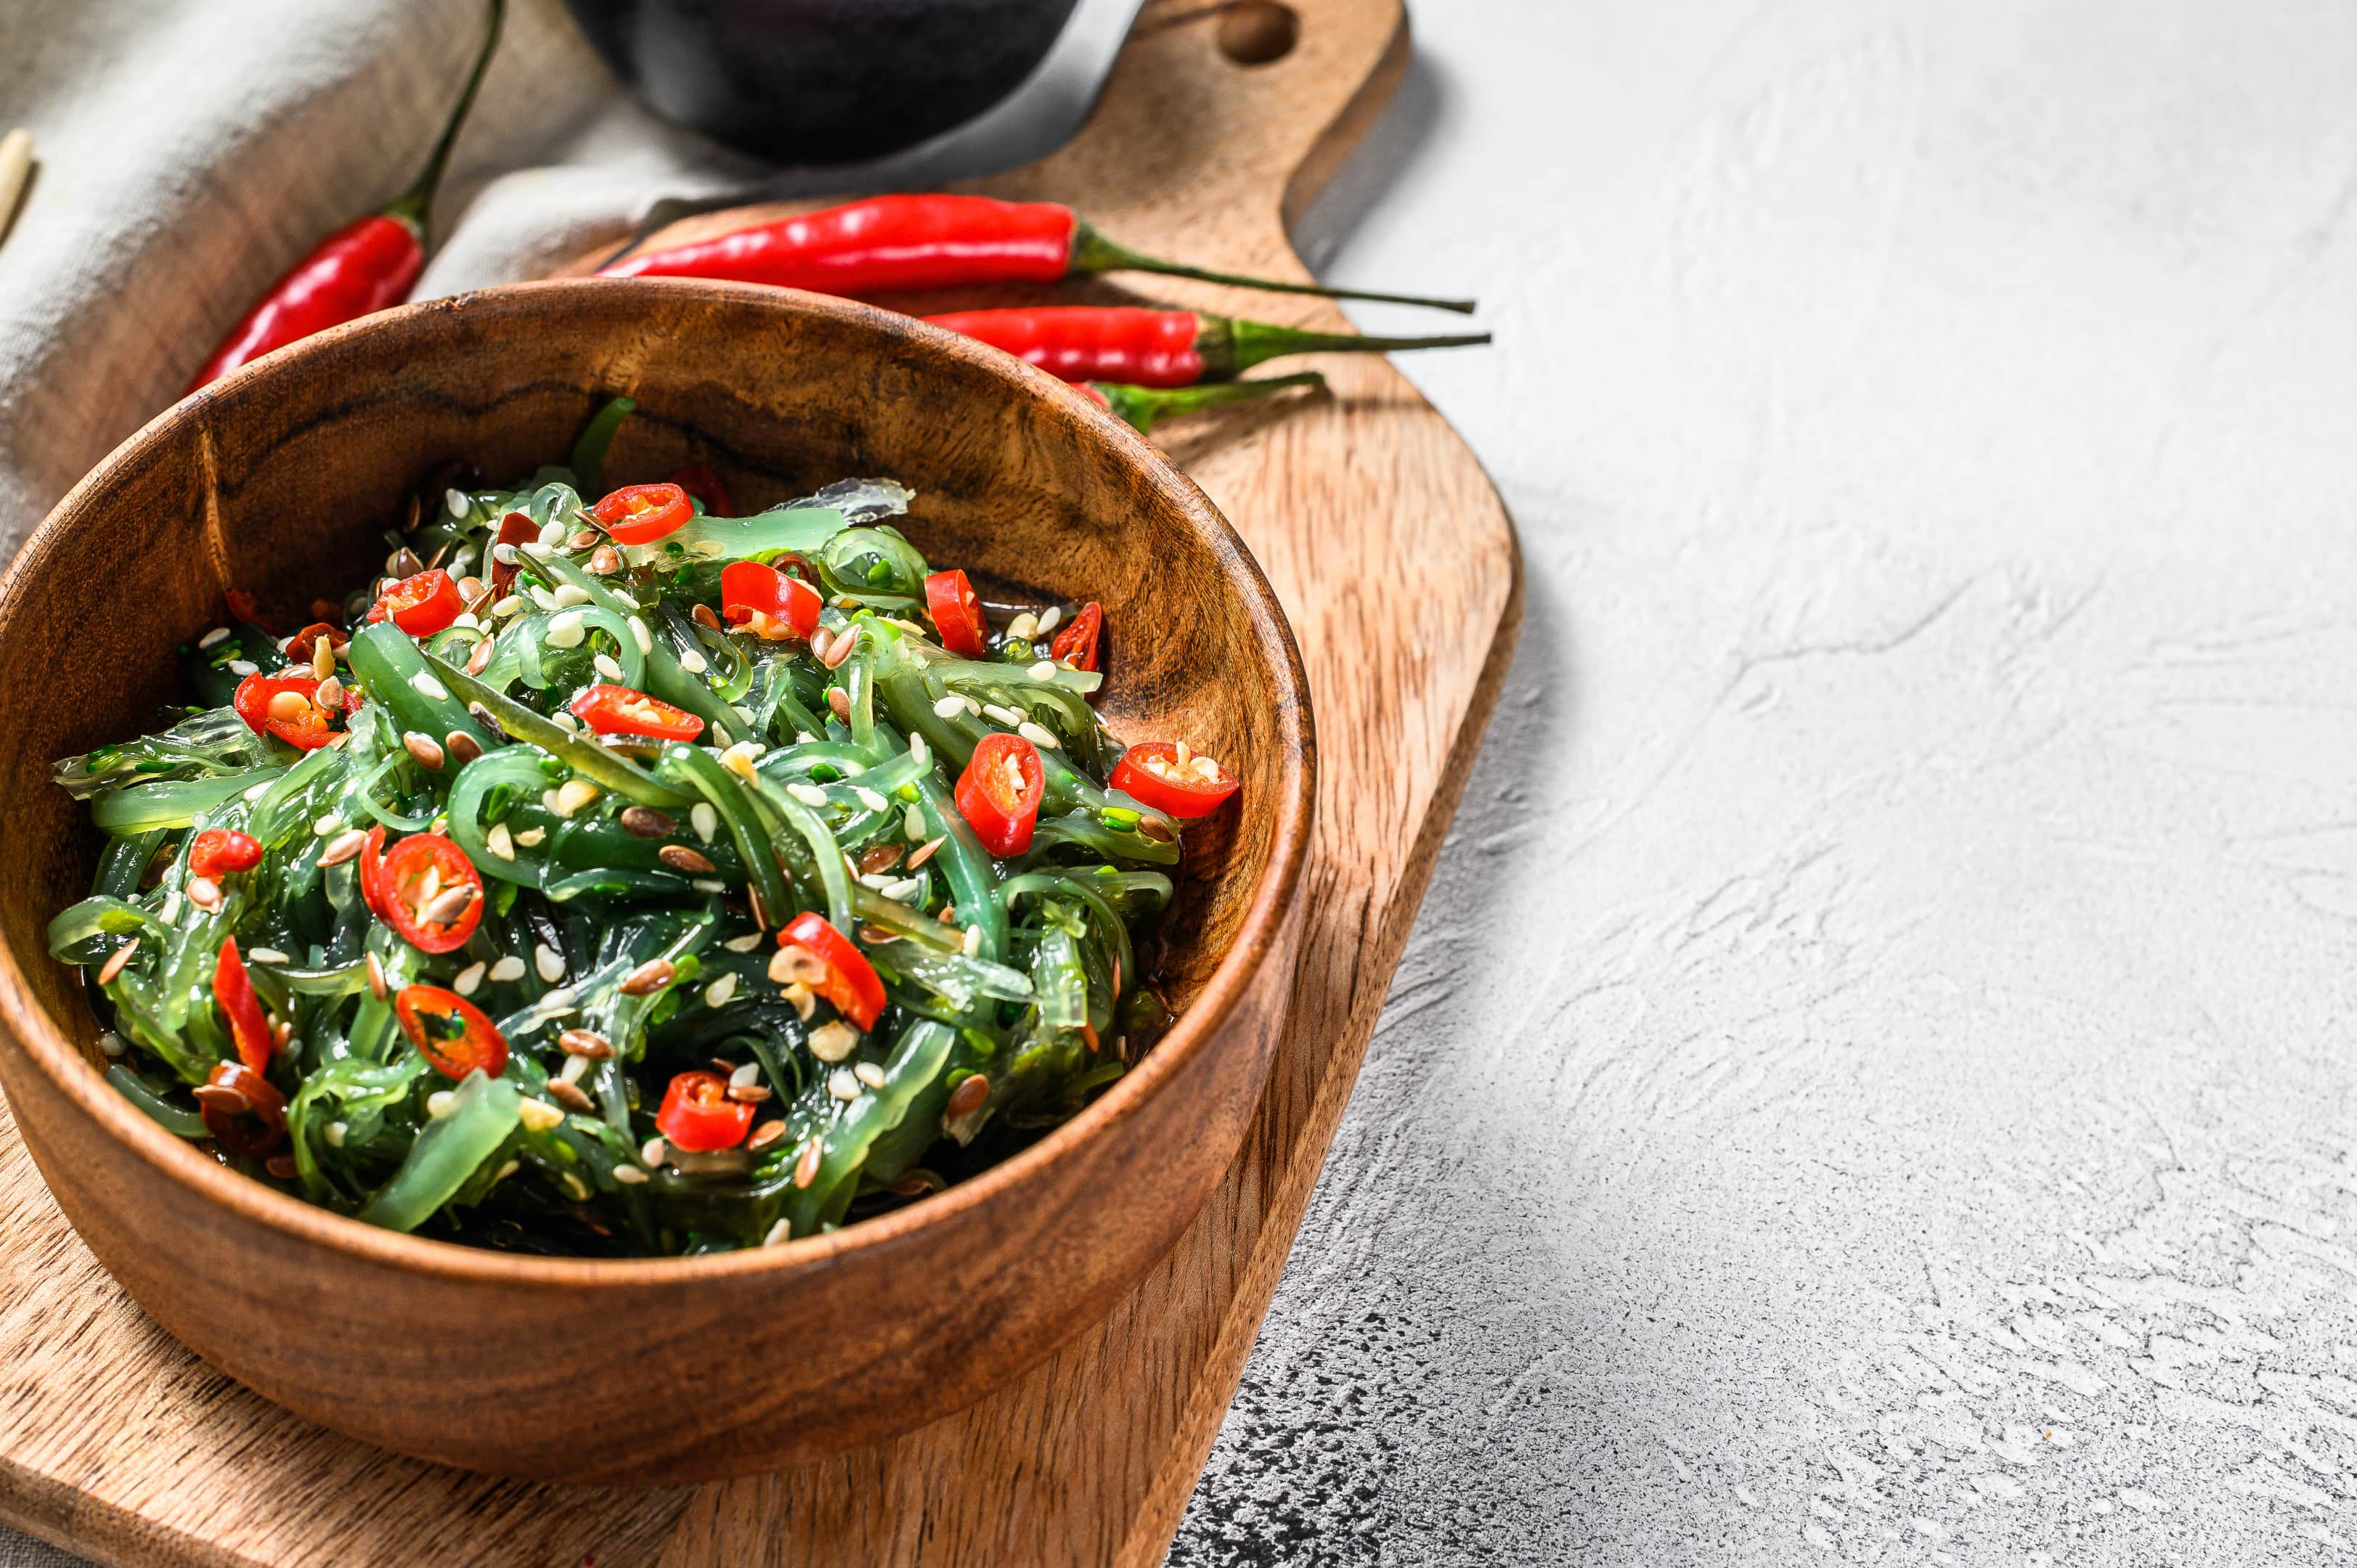 Salad with seaweed wakame and red chili pepper in wooden bowl